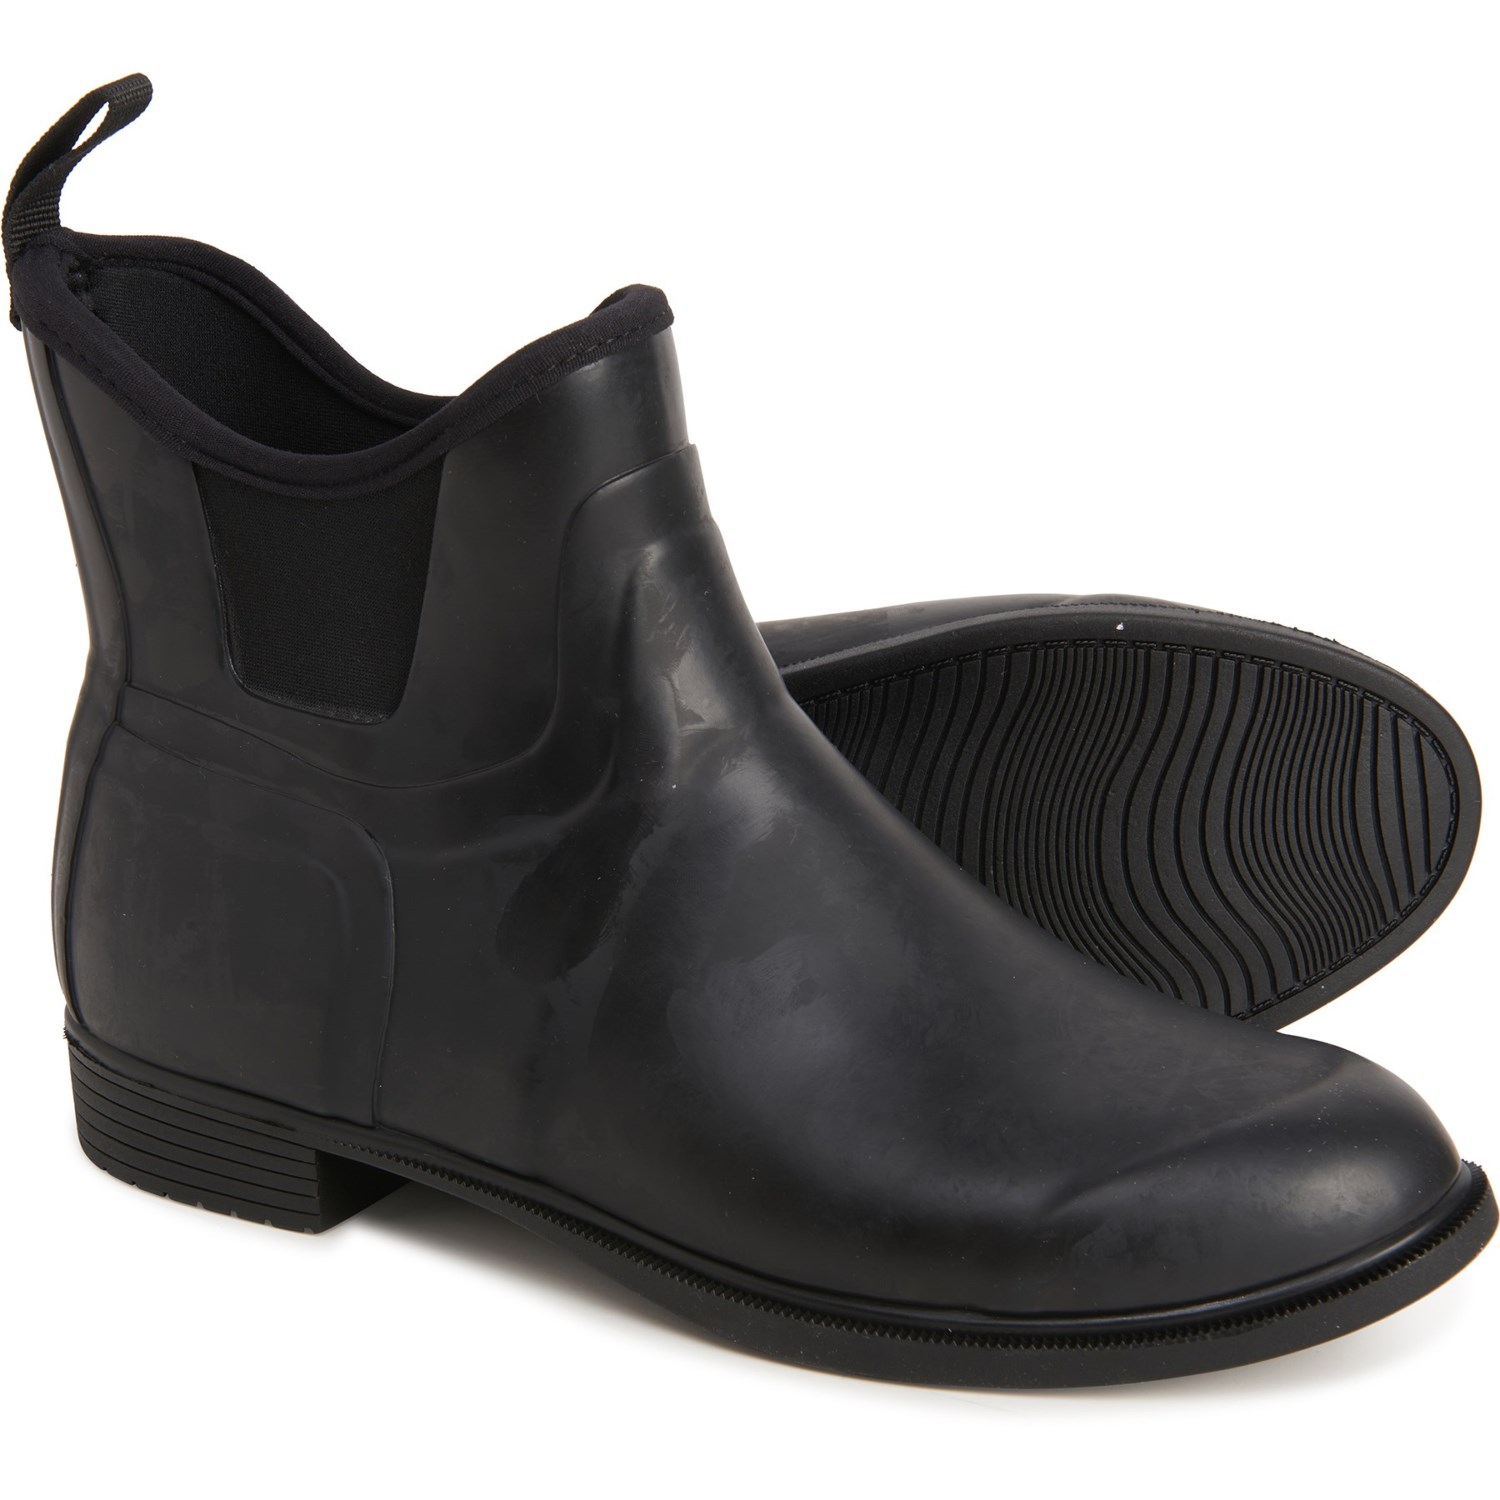 Muck Boot Company Derby Ankle Boots